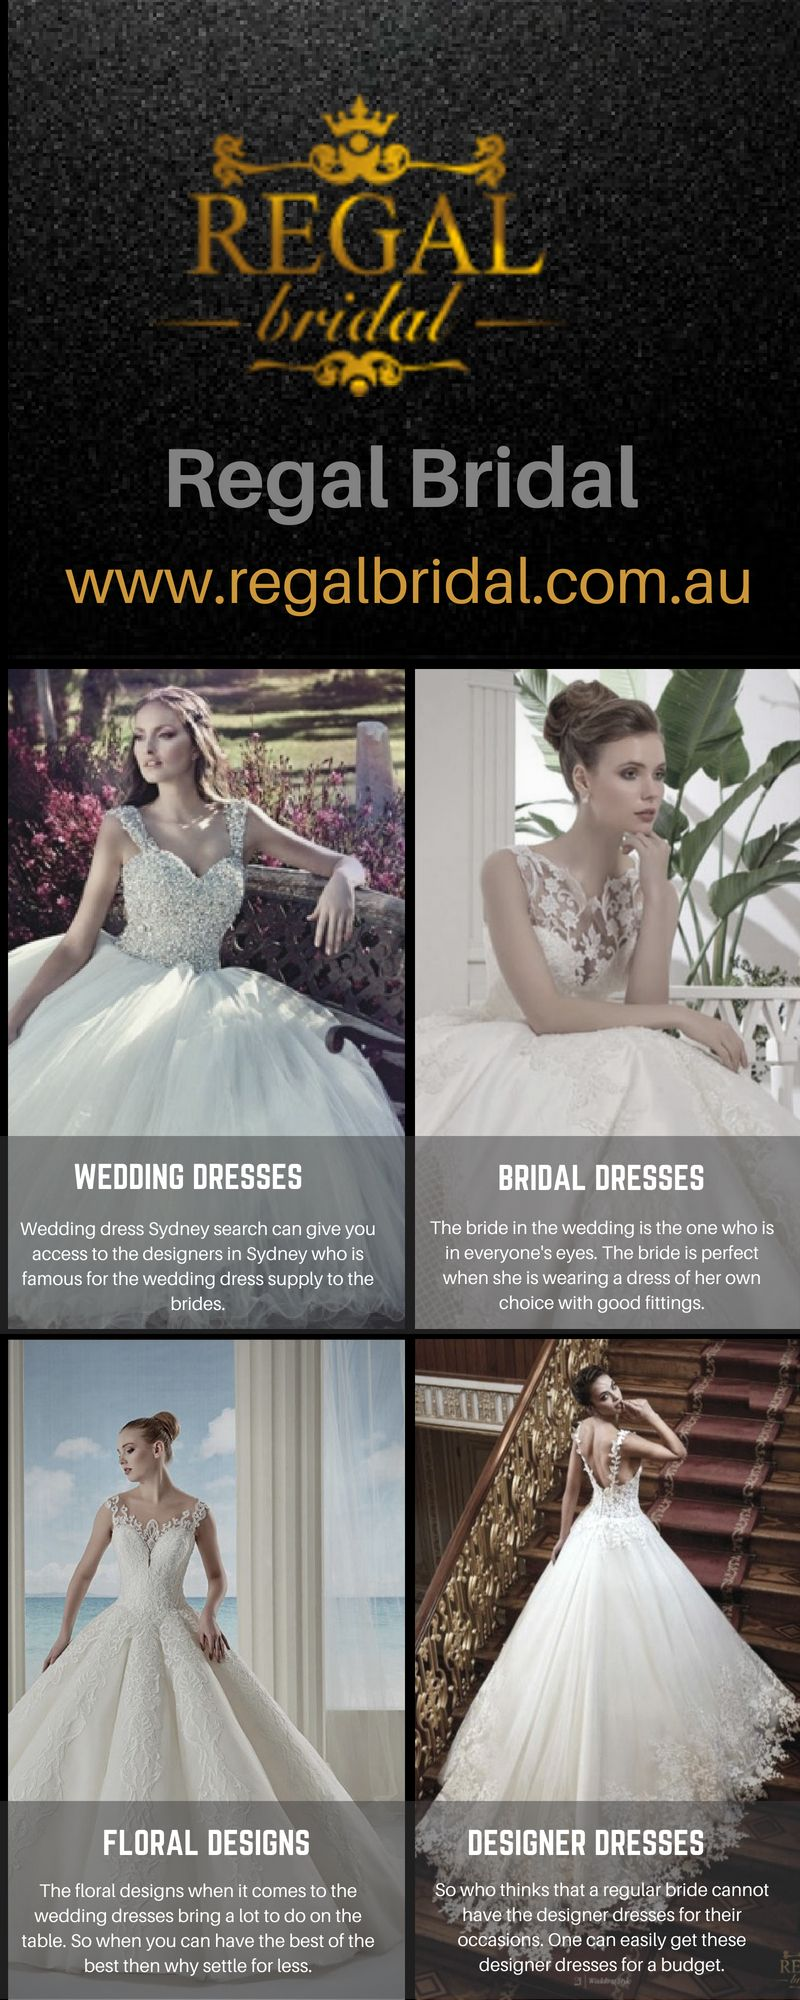 8543360659e3 Sometimes the wedding dresses of your dreams take time to find. Regal Bridal  has a wide range of wedding gowns, dresses, folar dresses, a collection of  ...